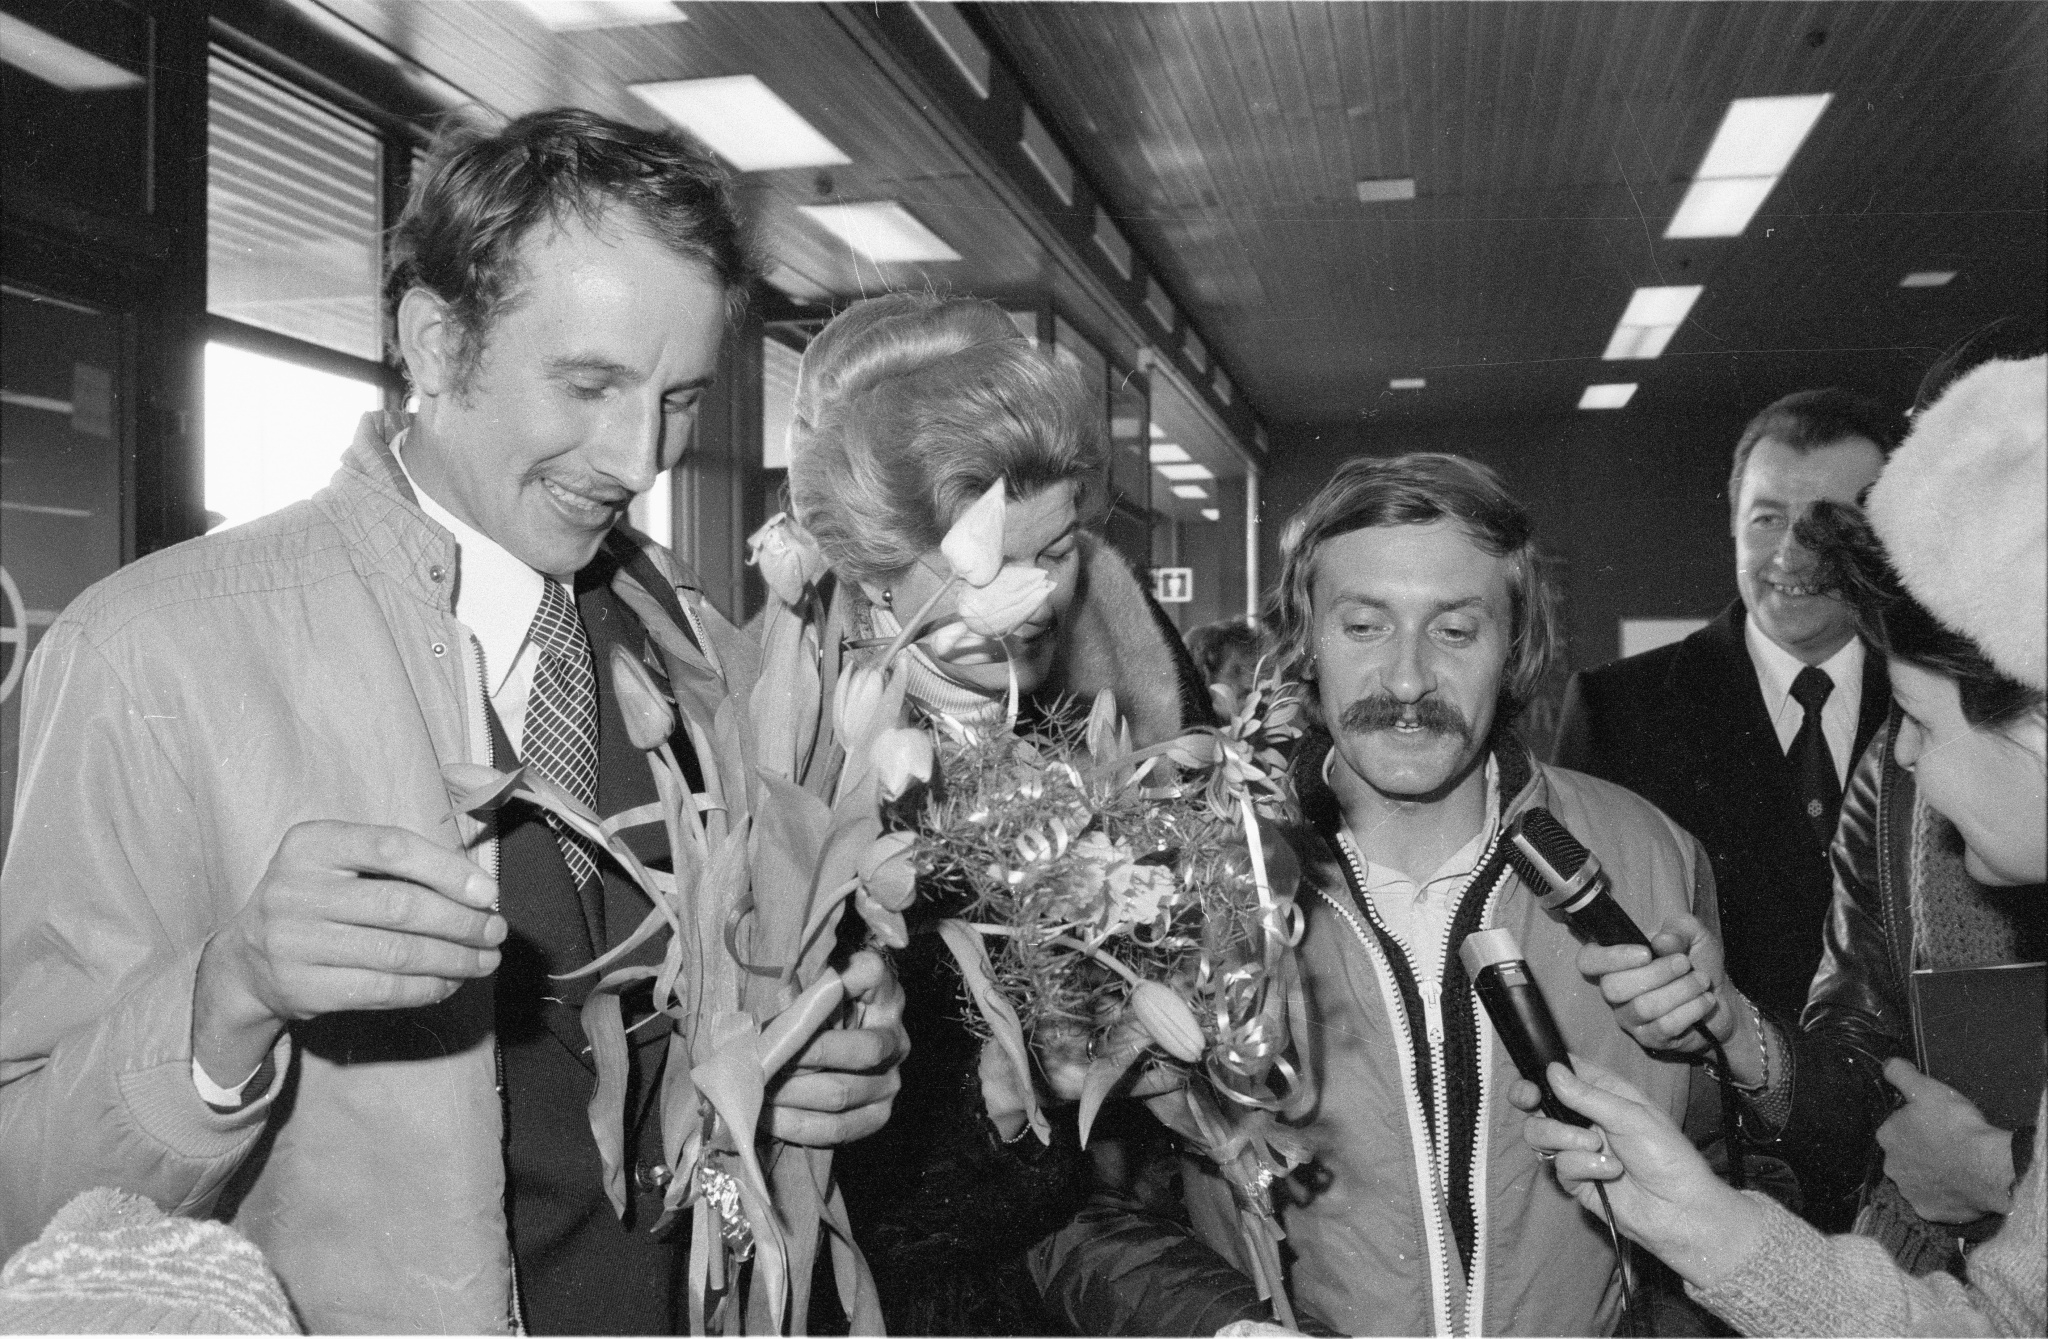 Leszek Cichy and Krzysztof Wielicki, safely back in Warsaw on March 16, 1980, after scaling Mount Everest in the winter.